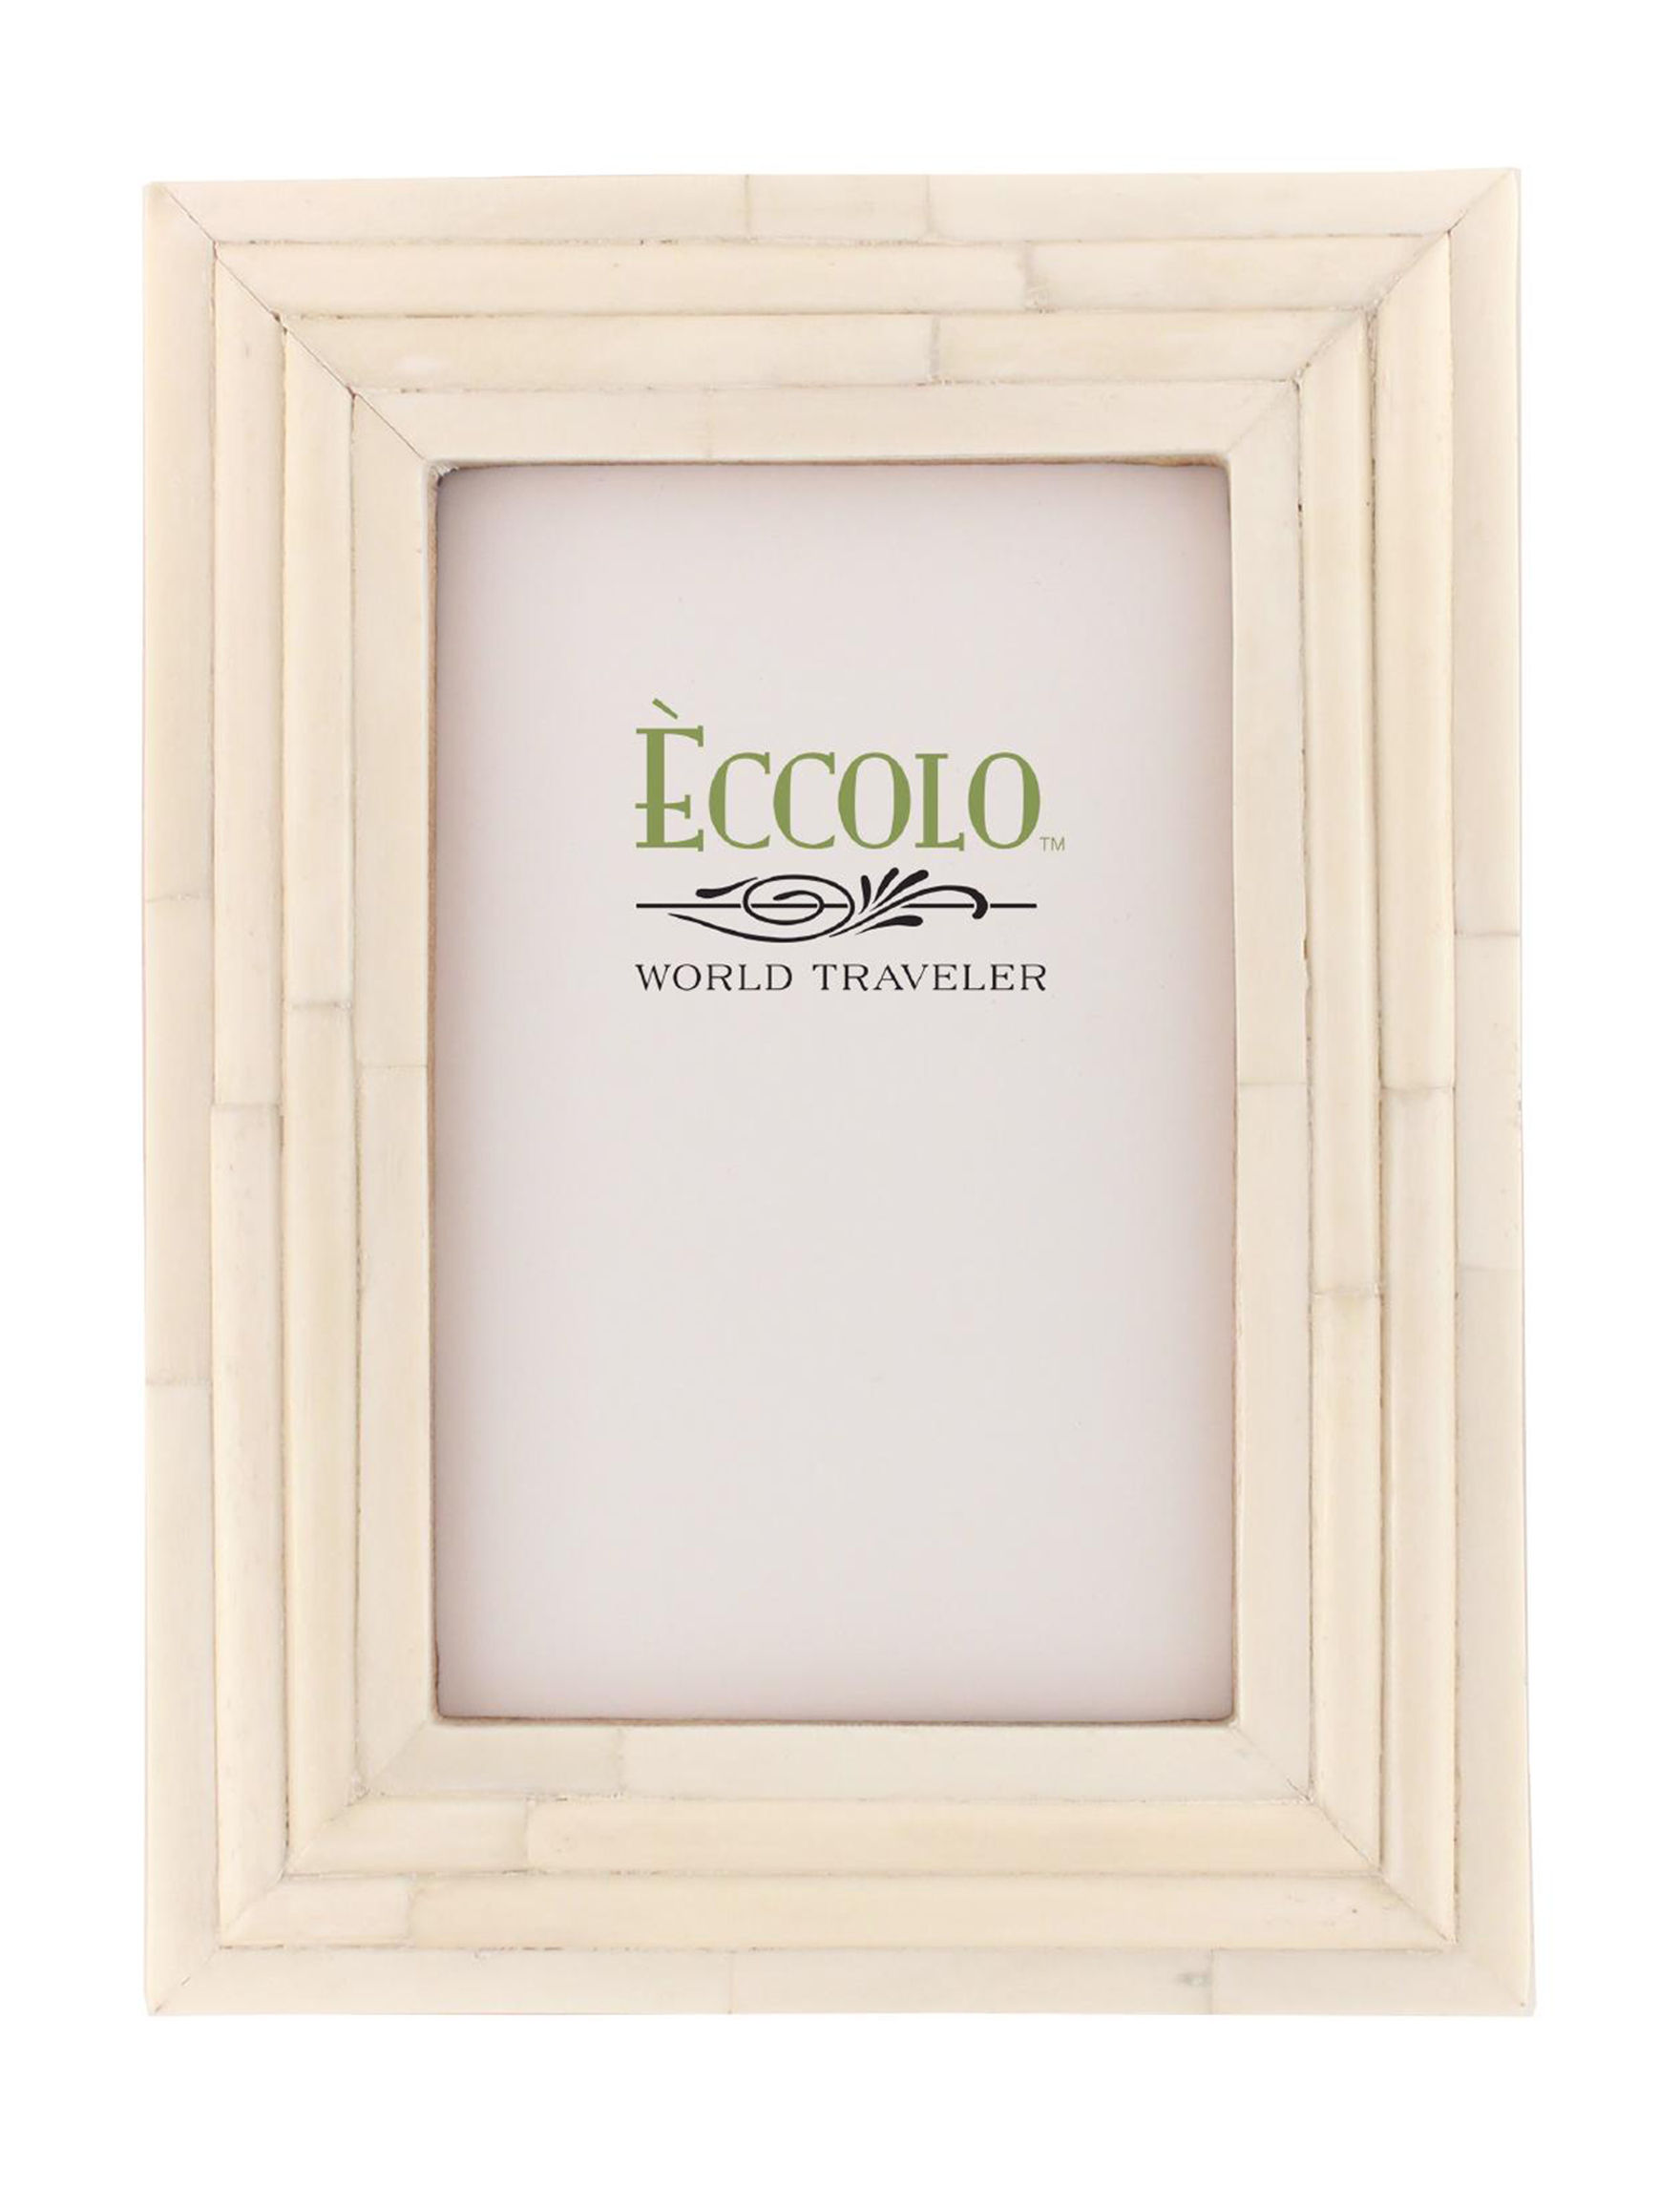 Eccolo Ivory Frames & Shadow Boxes Home Accents